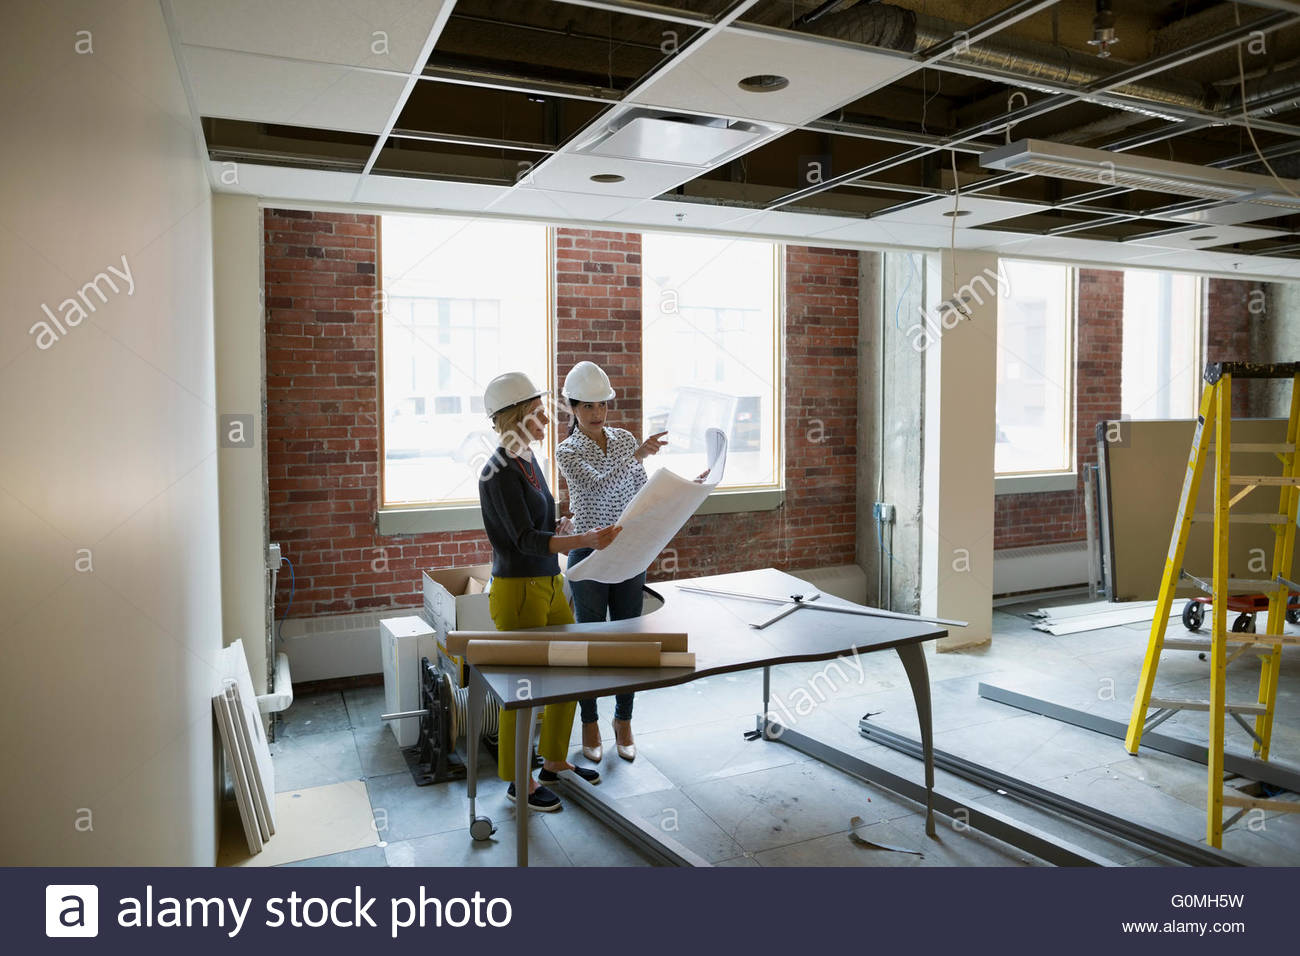 Architect and engineer discussing blueprints office construction site - Stock Image